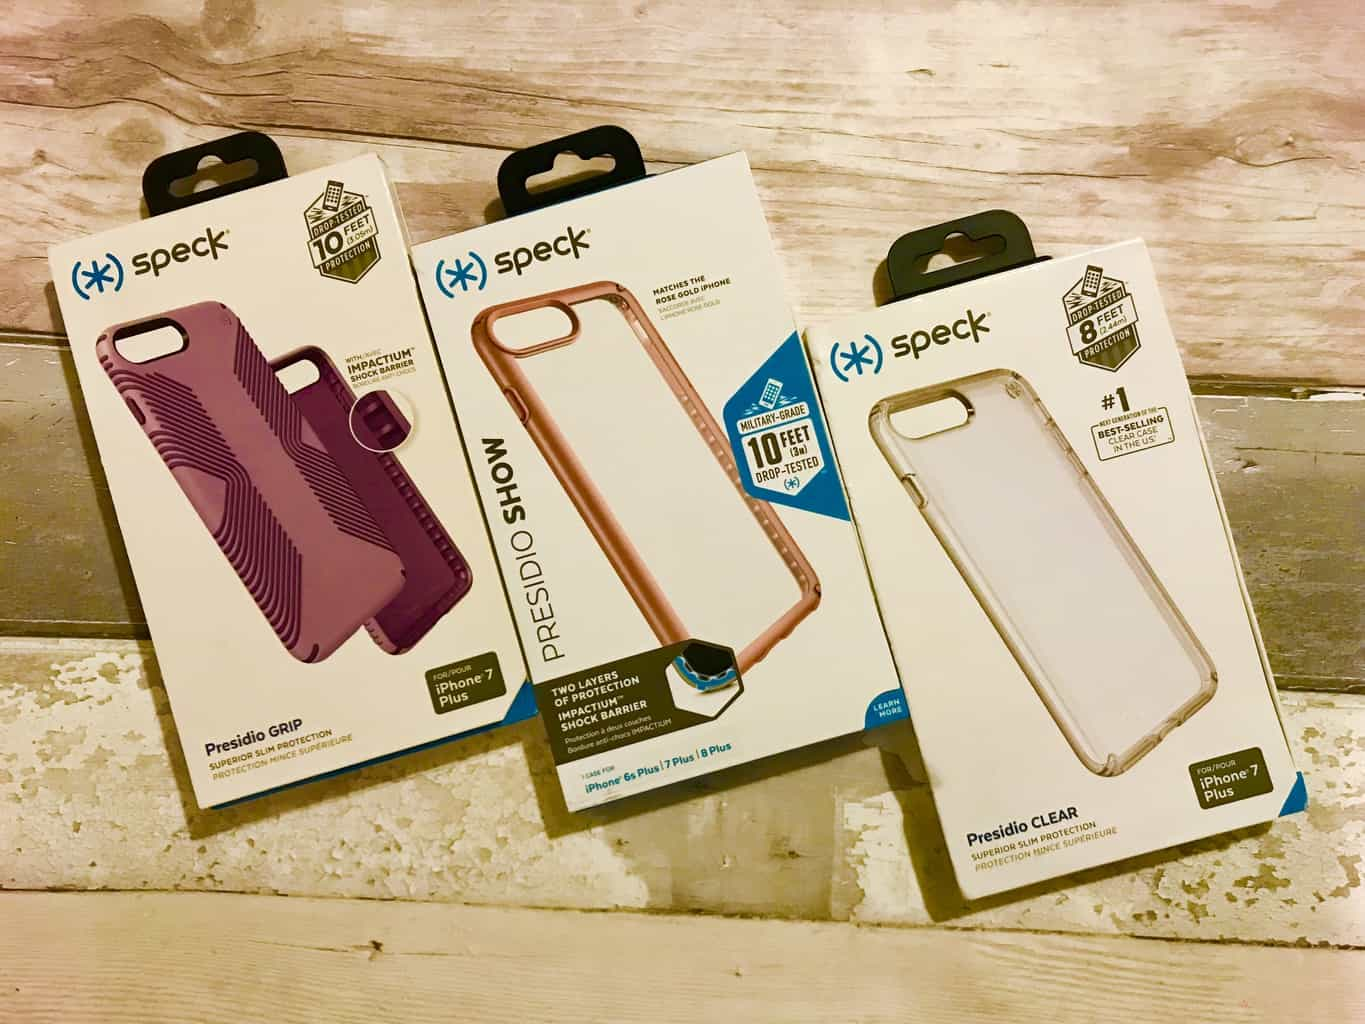 Speck Mobile Phone Case Giveaway!